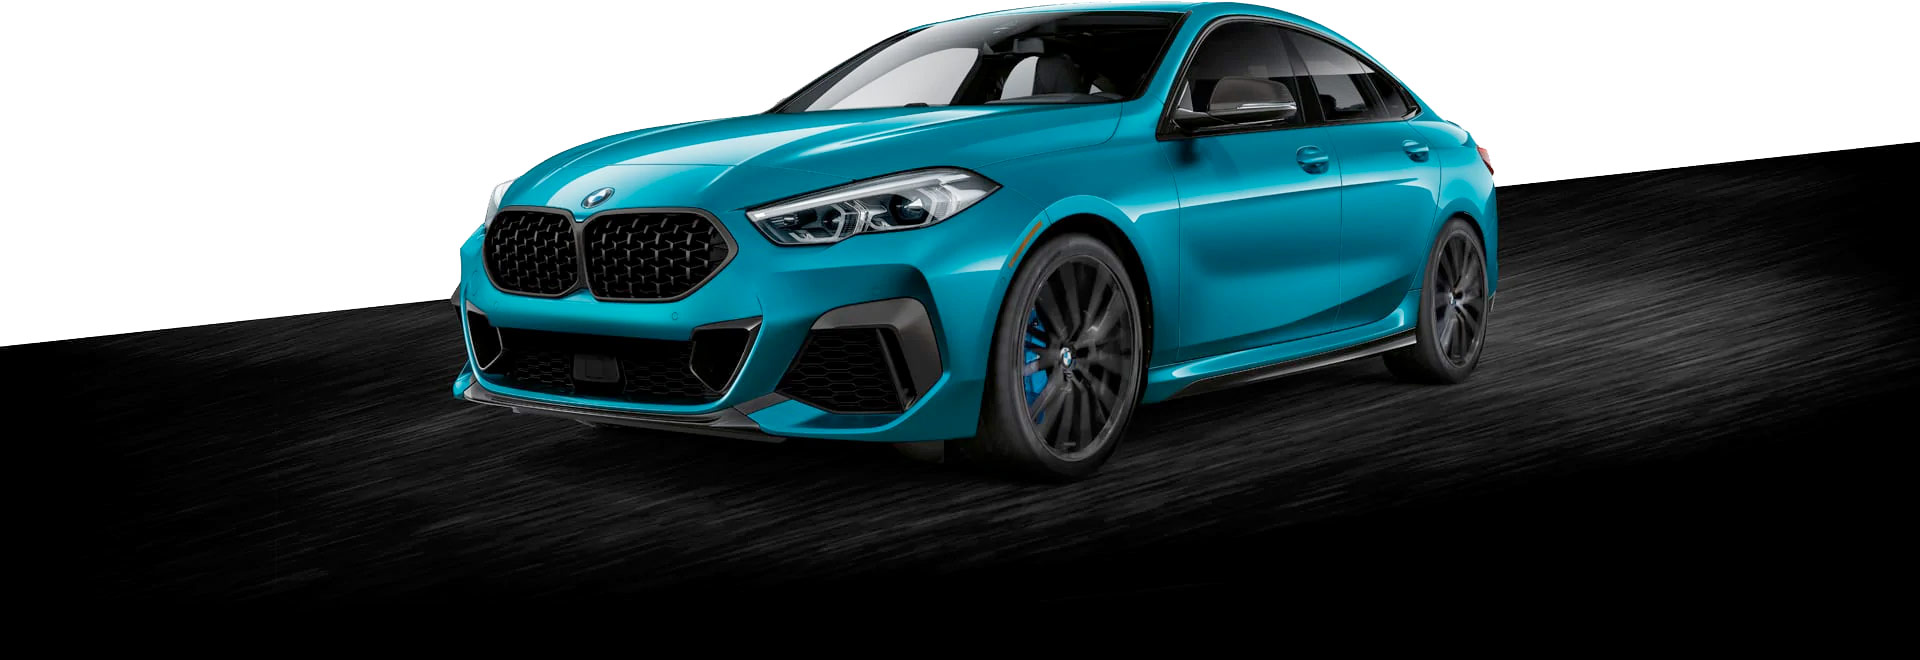 Blue 2020 BMW 2 Series Gran Coupe driving on road